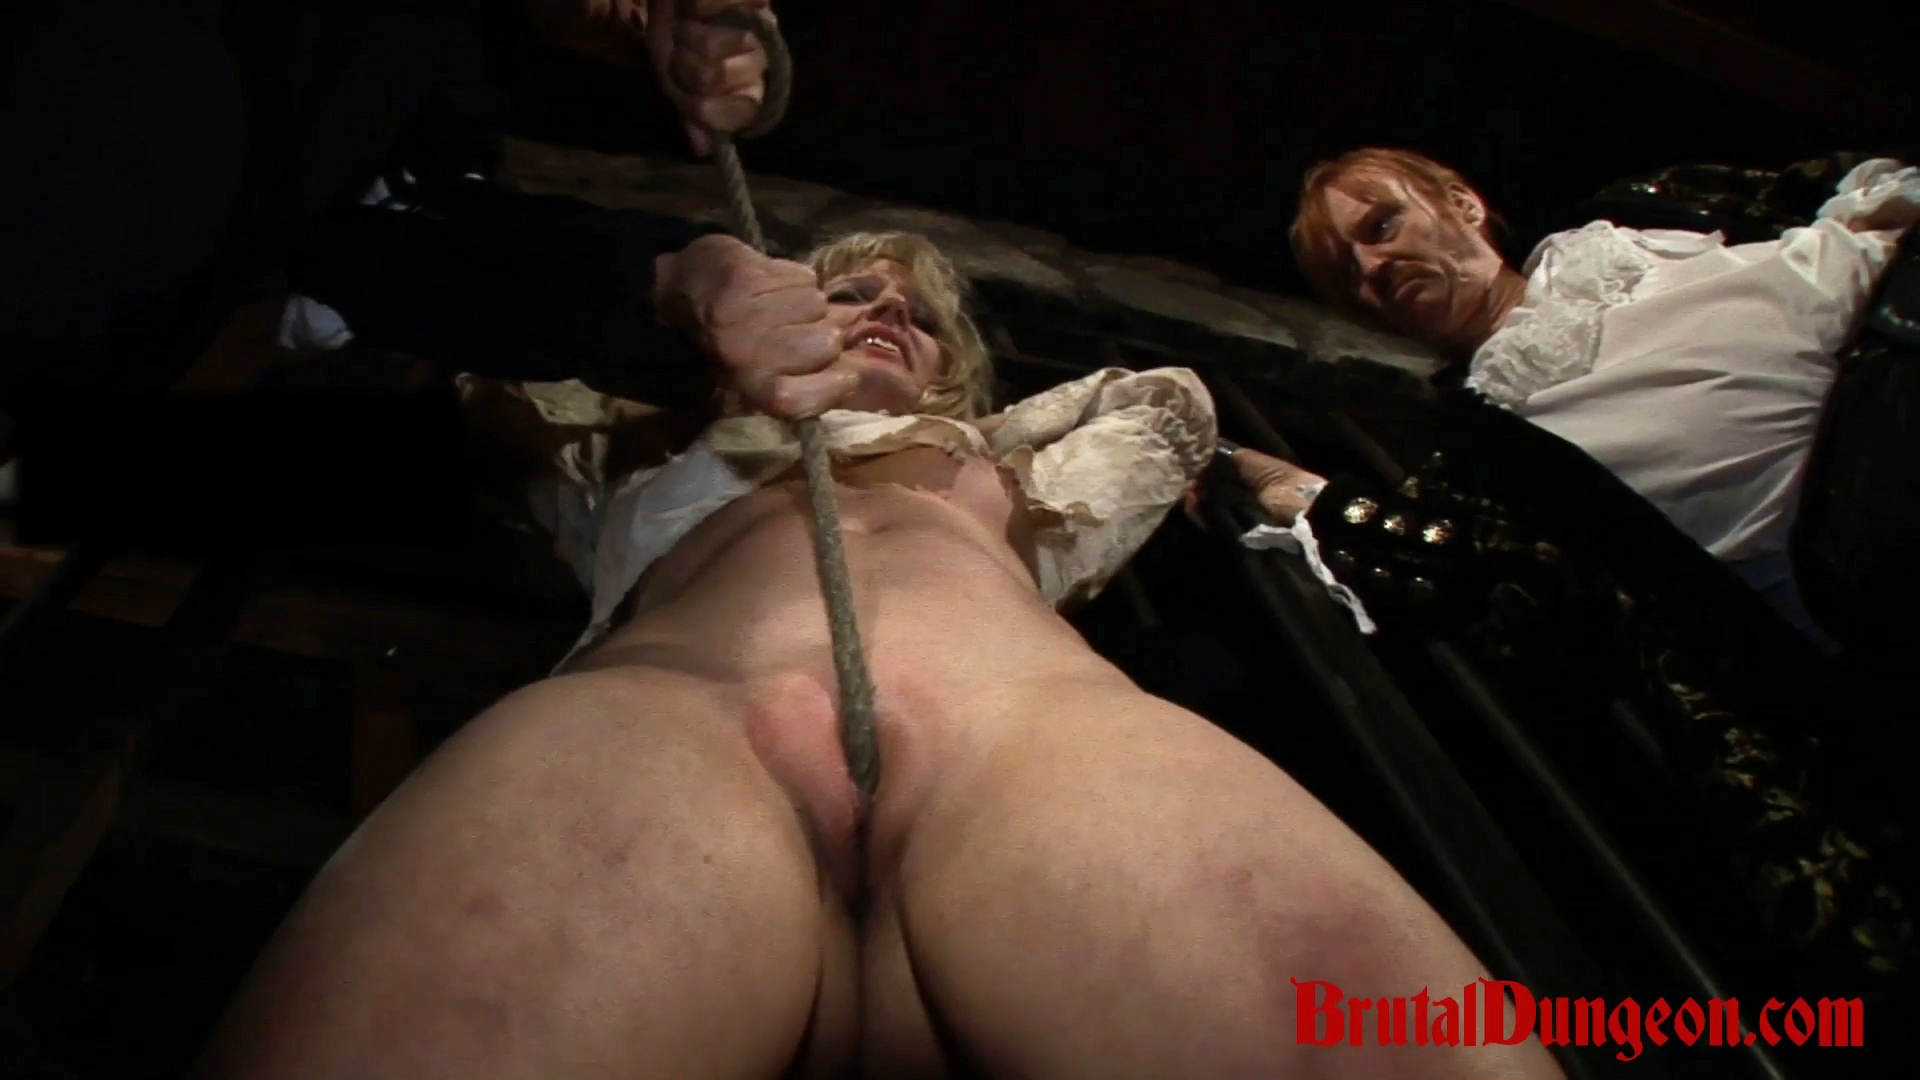 Blonde amalia imprisoned bdsm gang bang. In our dungeon, a young blonde is left begging for a second chance. She is denied and must endure imprisonment, bondage, domination, BDSM fun, gang bang, spanking, fingering, tit, nipple and pussy torment.